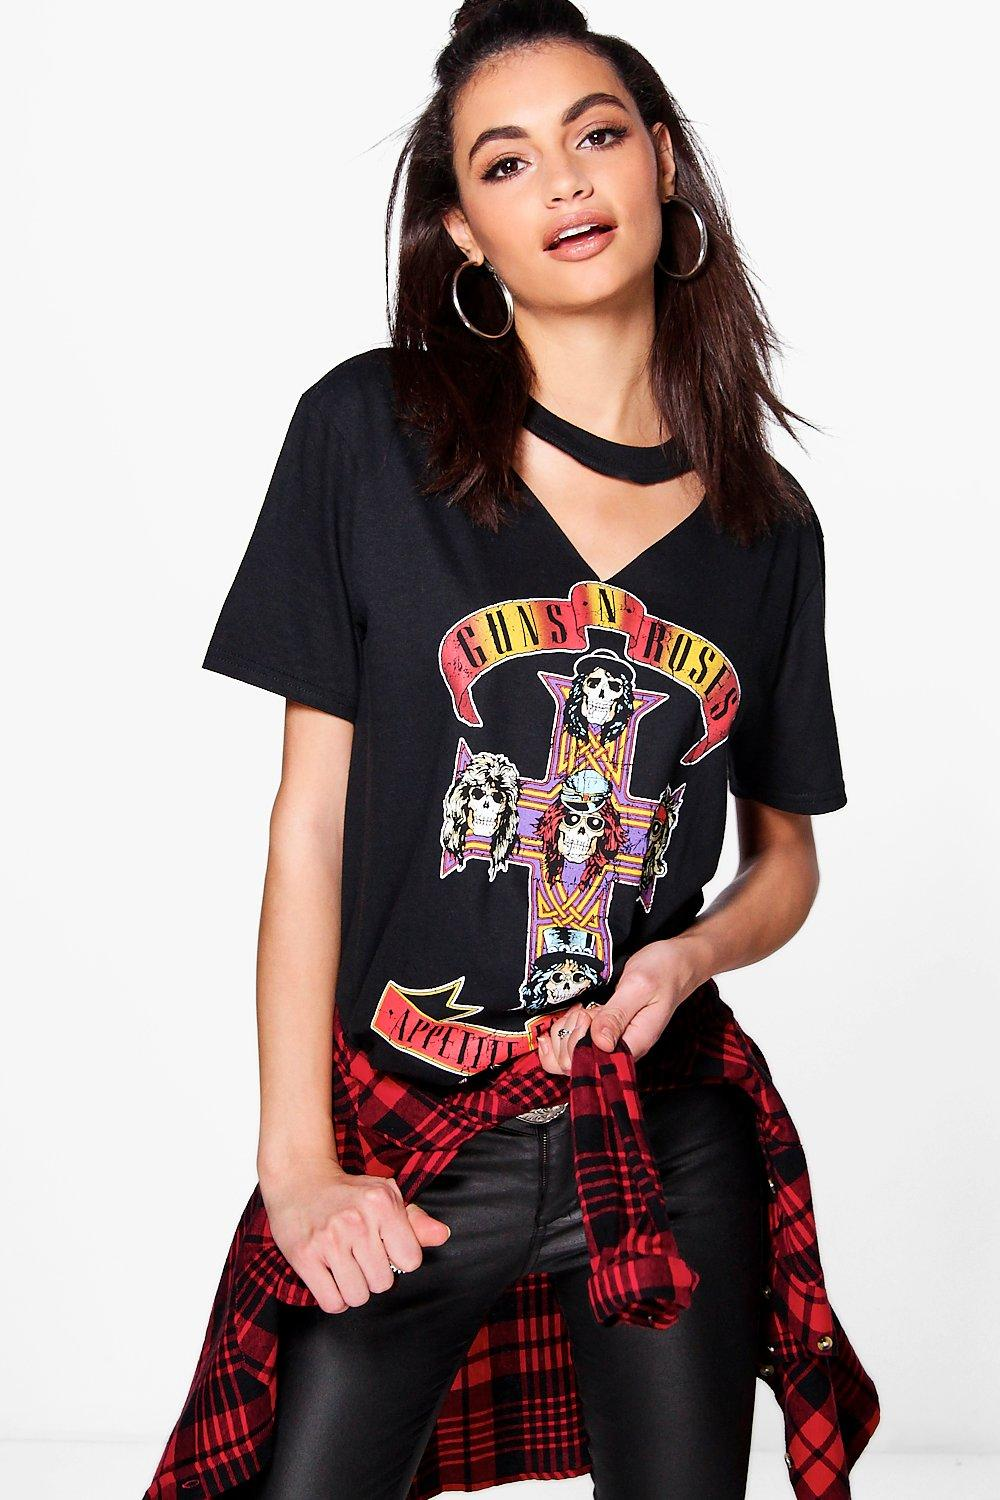 Official-Womens-Guns-n-Roses-T-Shirt-Tee-Cut-Out-Neck-Appetite-for-Destruction thumbnail 12